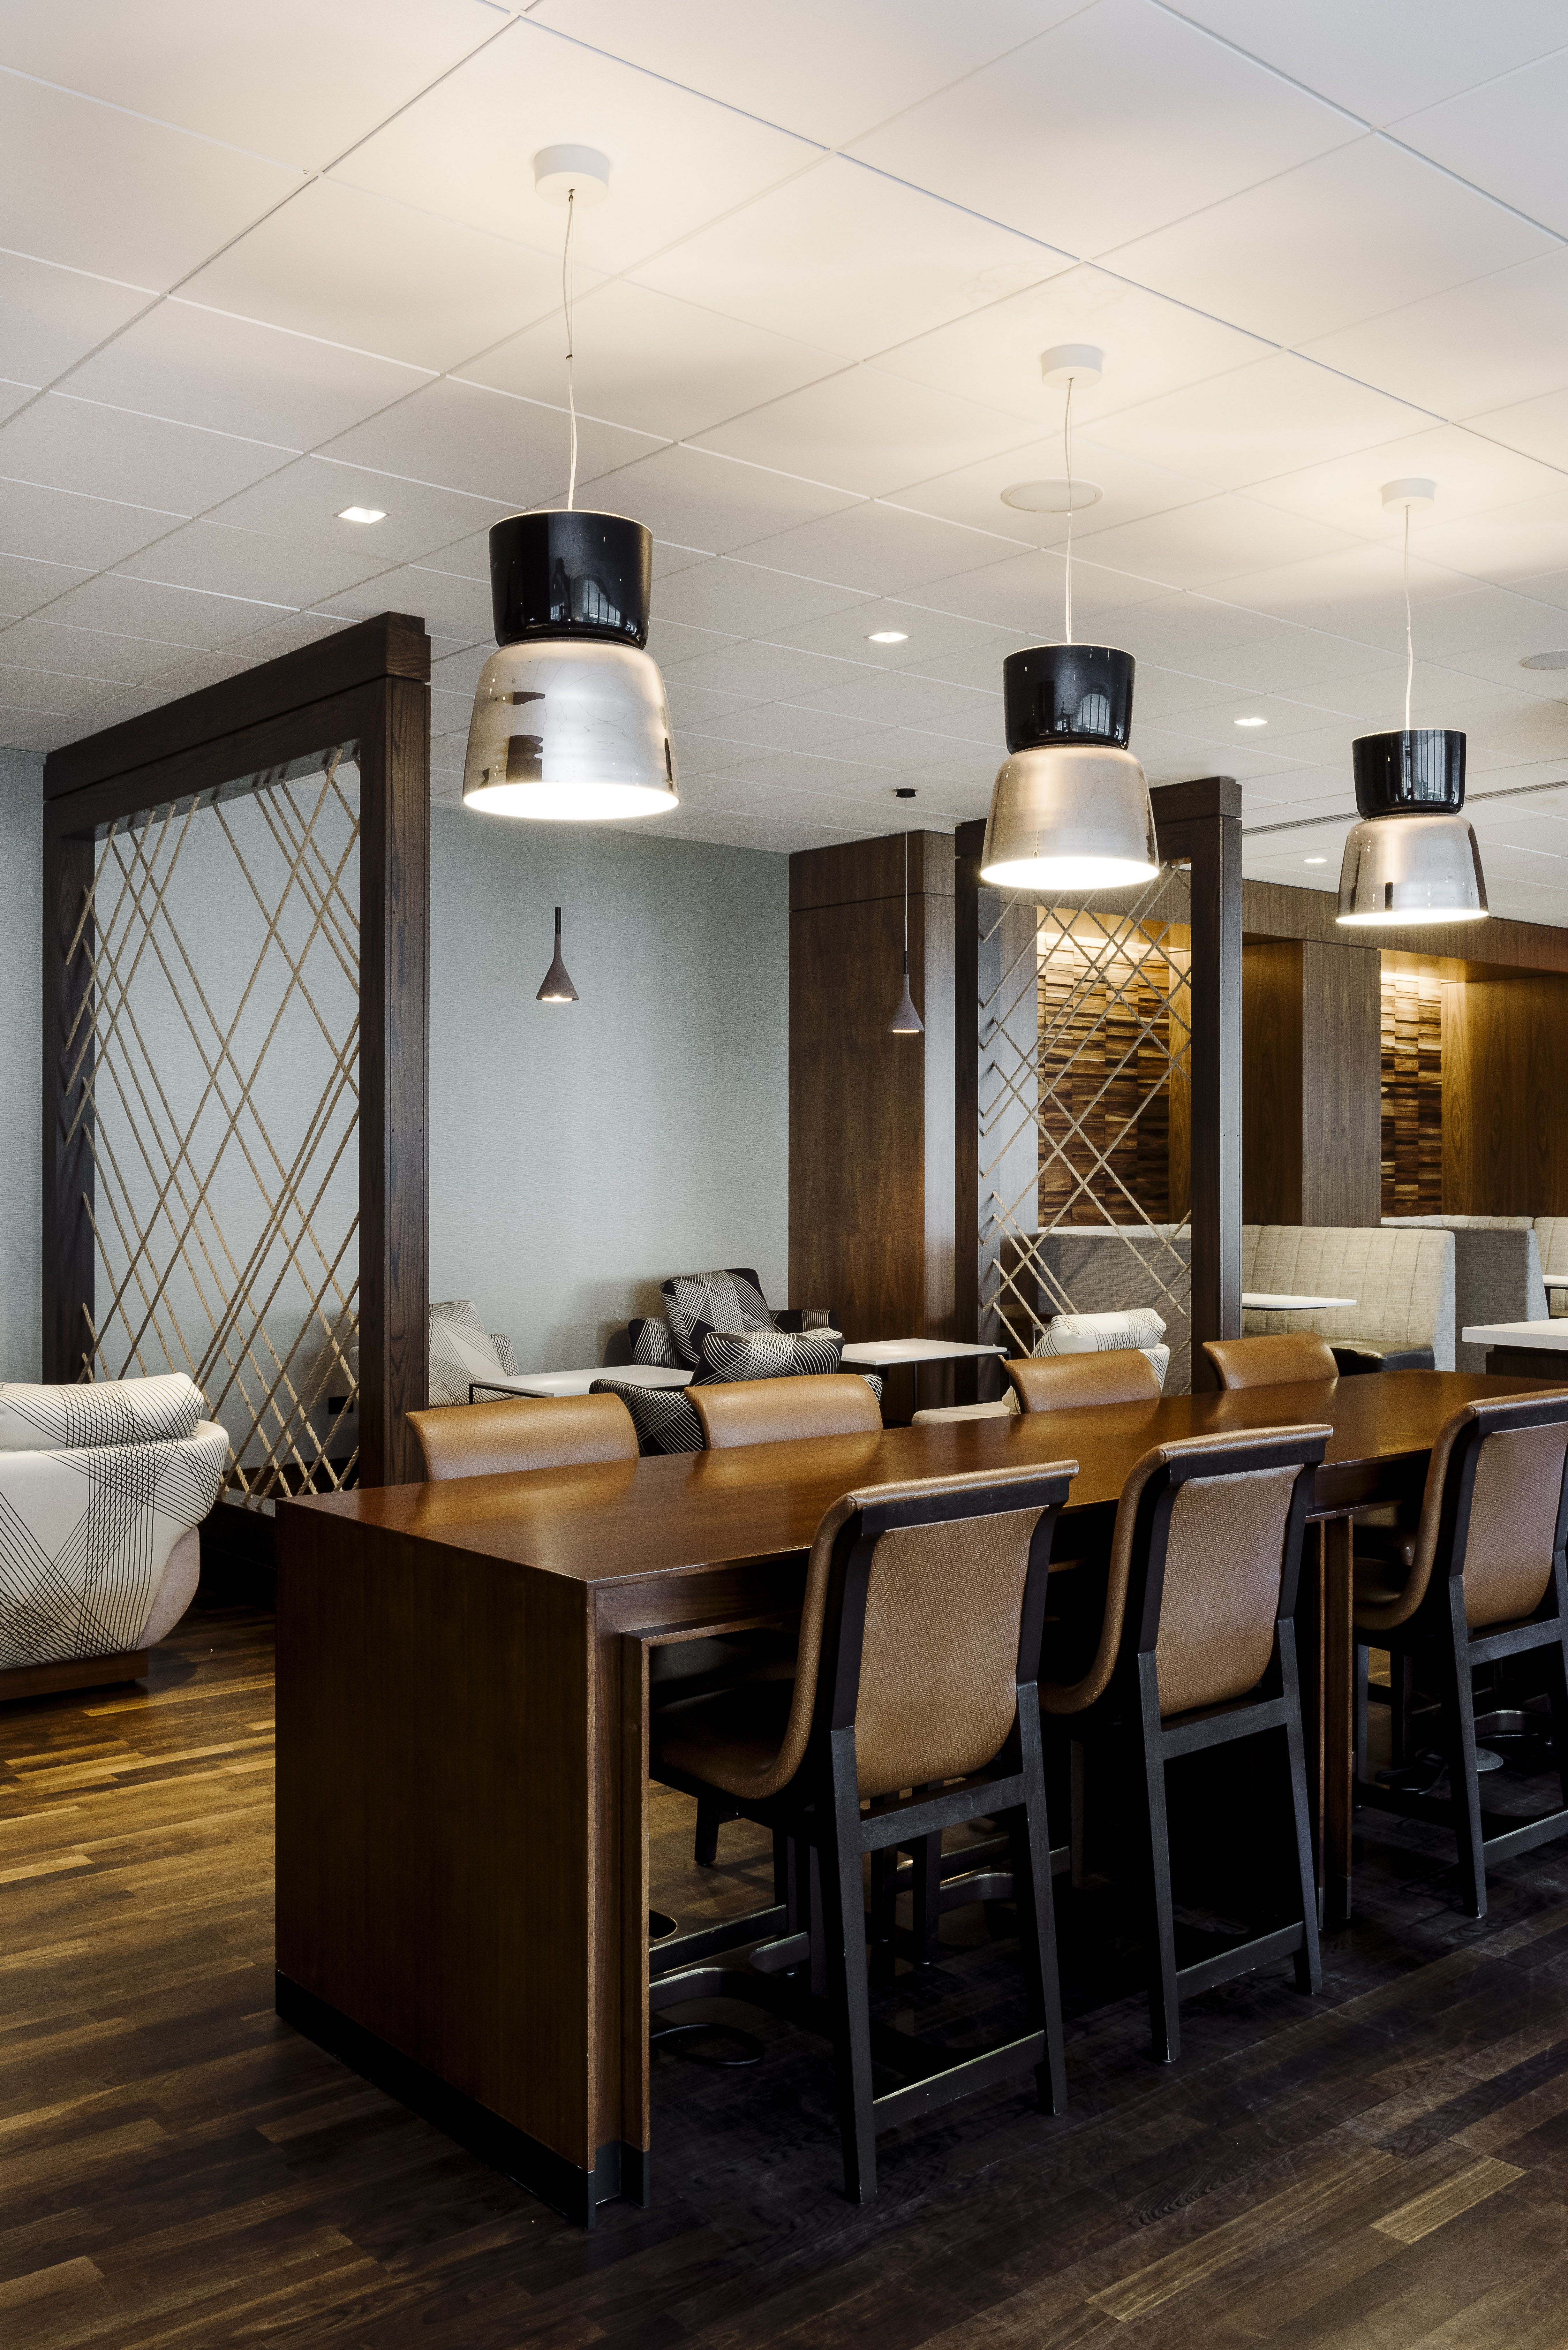 The Public Space at Marriott Brooklyn Bridge designed by New York